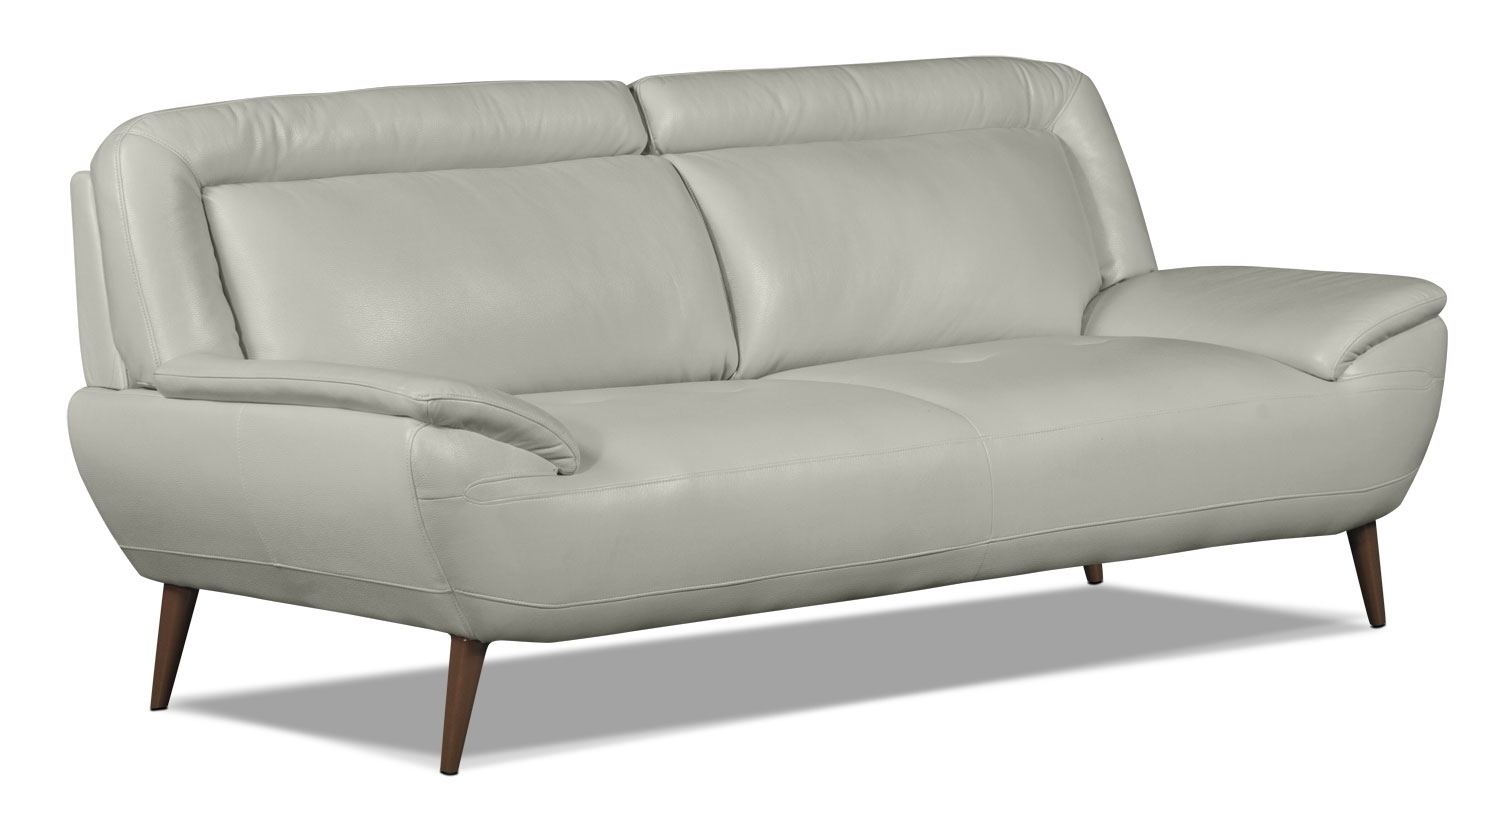 Cindy Crawford Sofa All Information Sofa Desain Ideas Within Cindy Crawford Sofas (View 10 of 15)